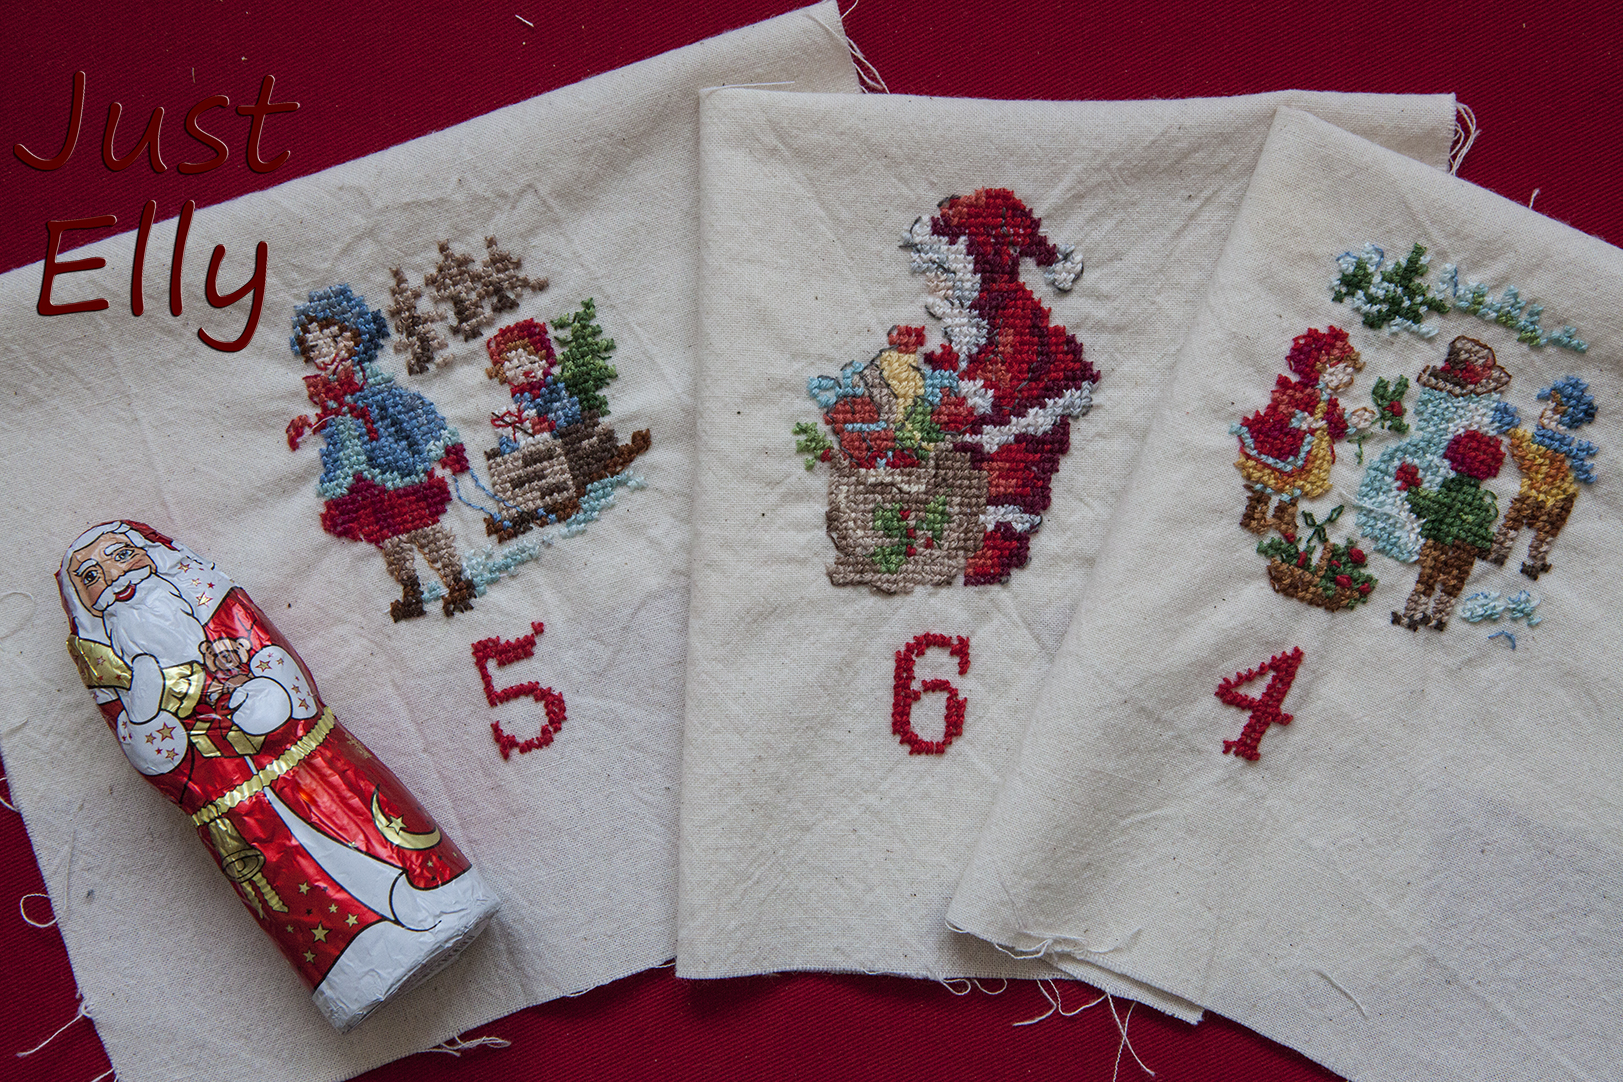 Cross stitching Dec 4-6